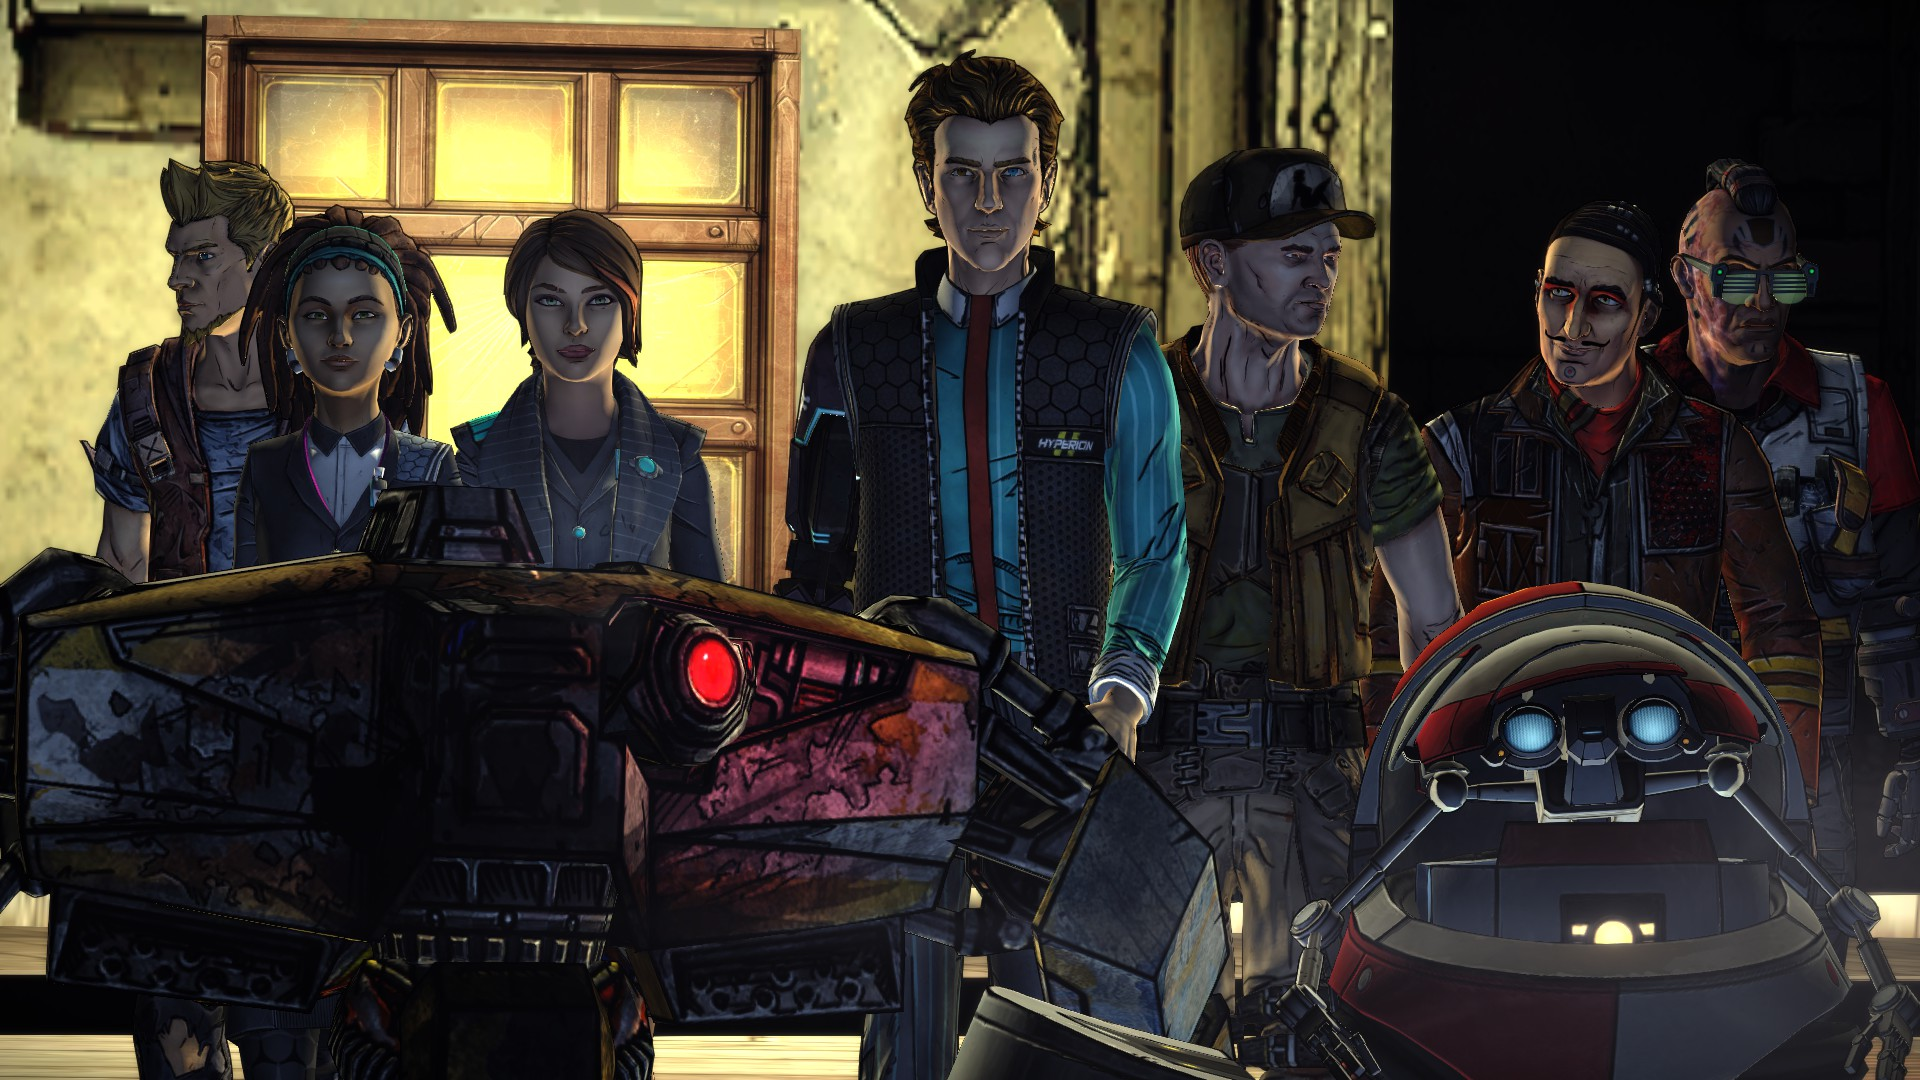 Tales from the Borderlands Ep 4 Review